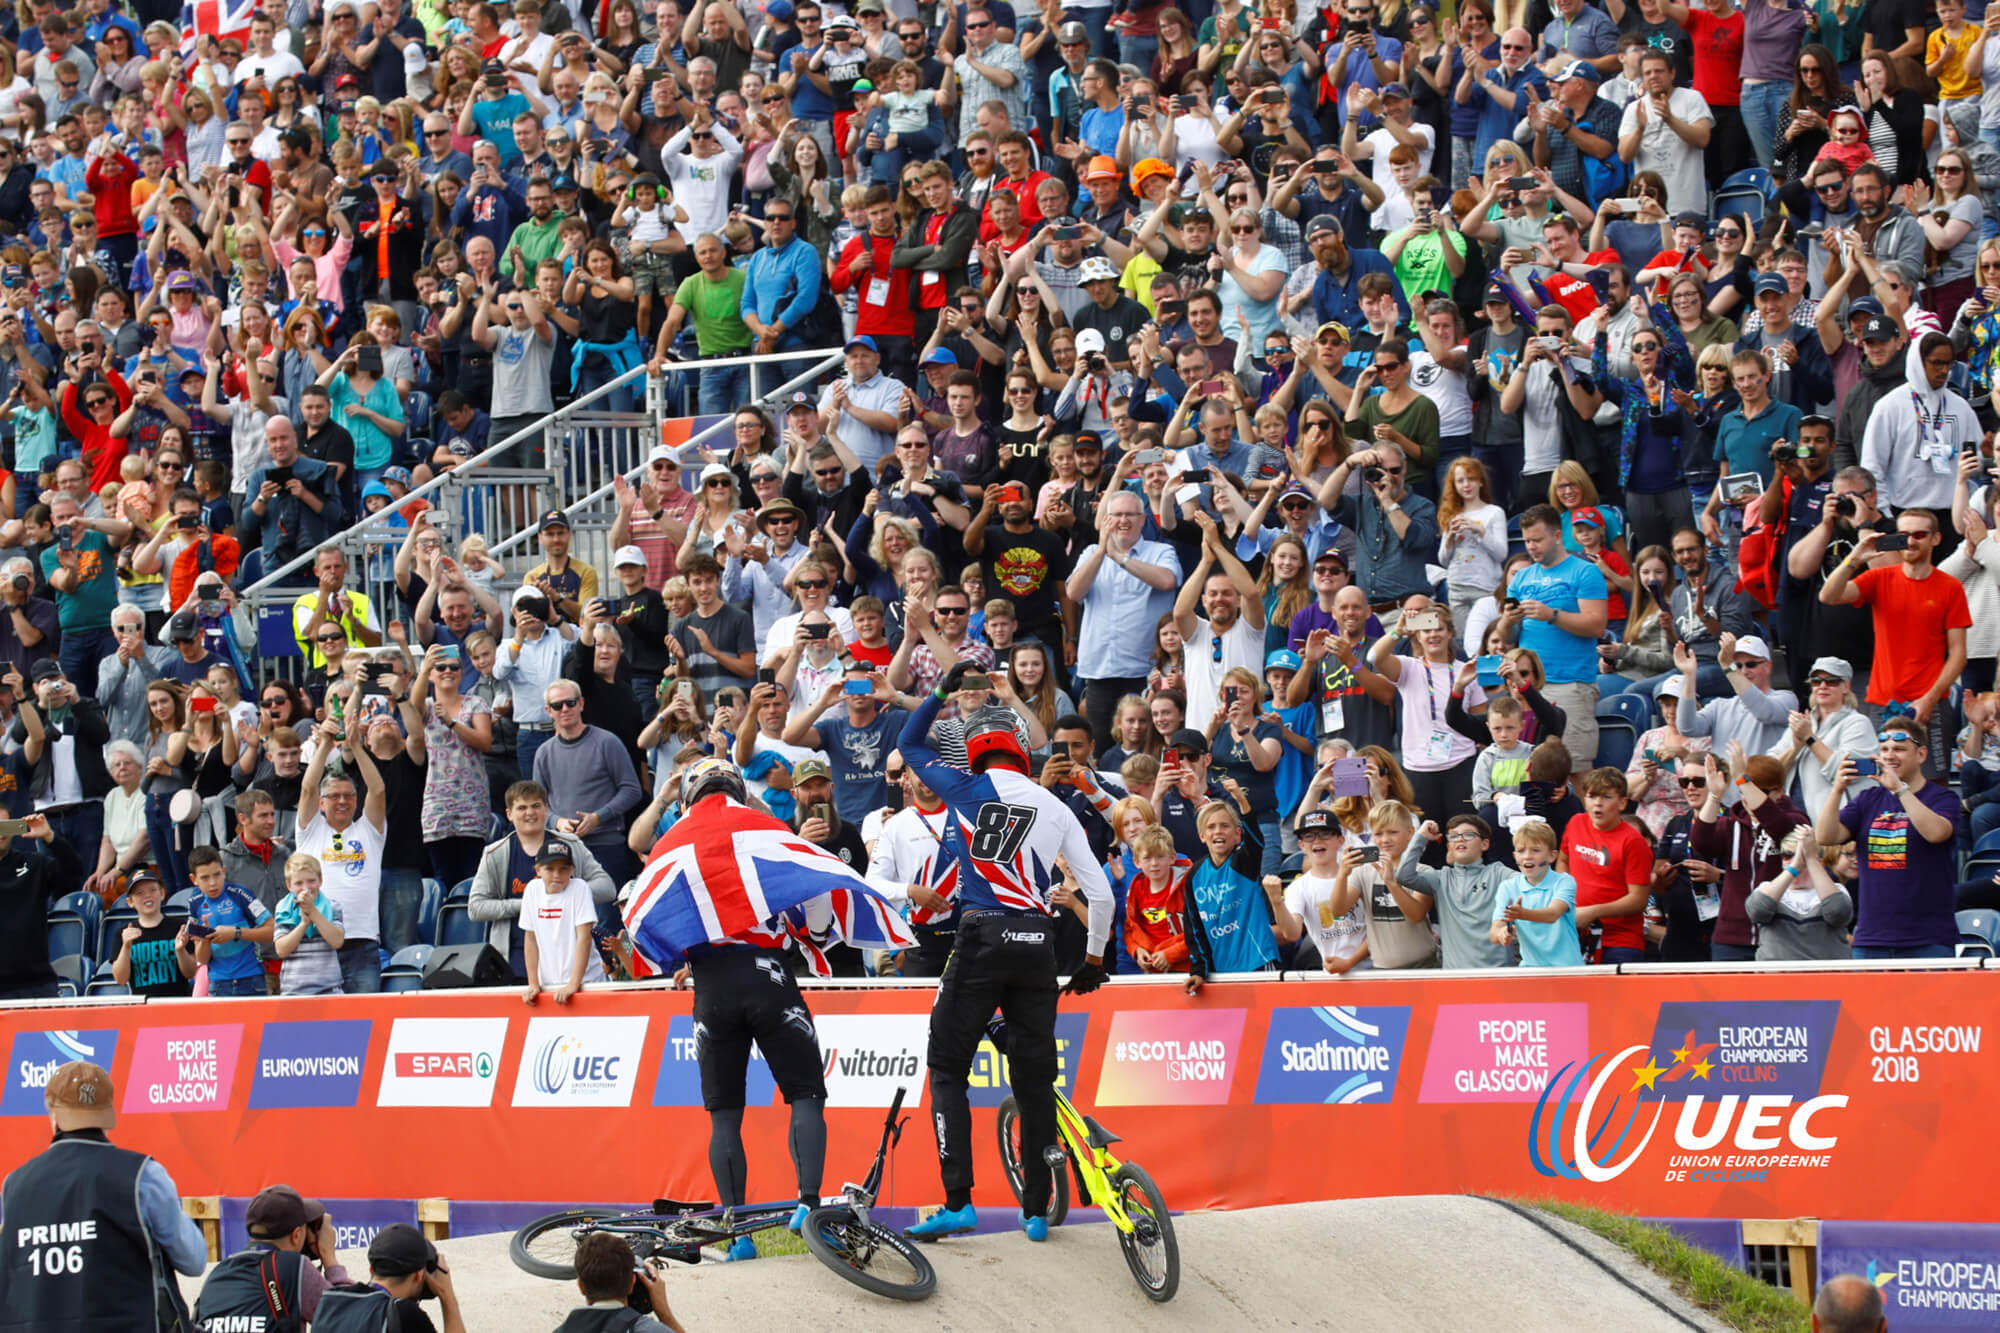 UCI Cycling World Championships - photo by UEC